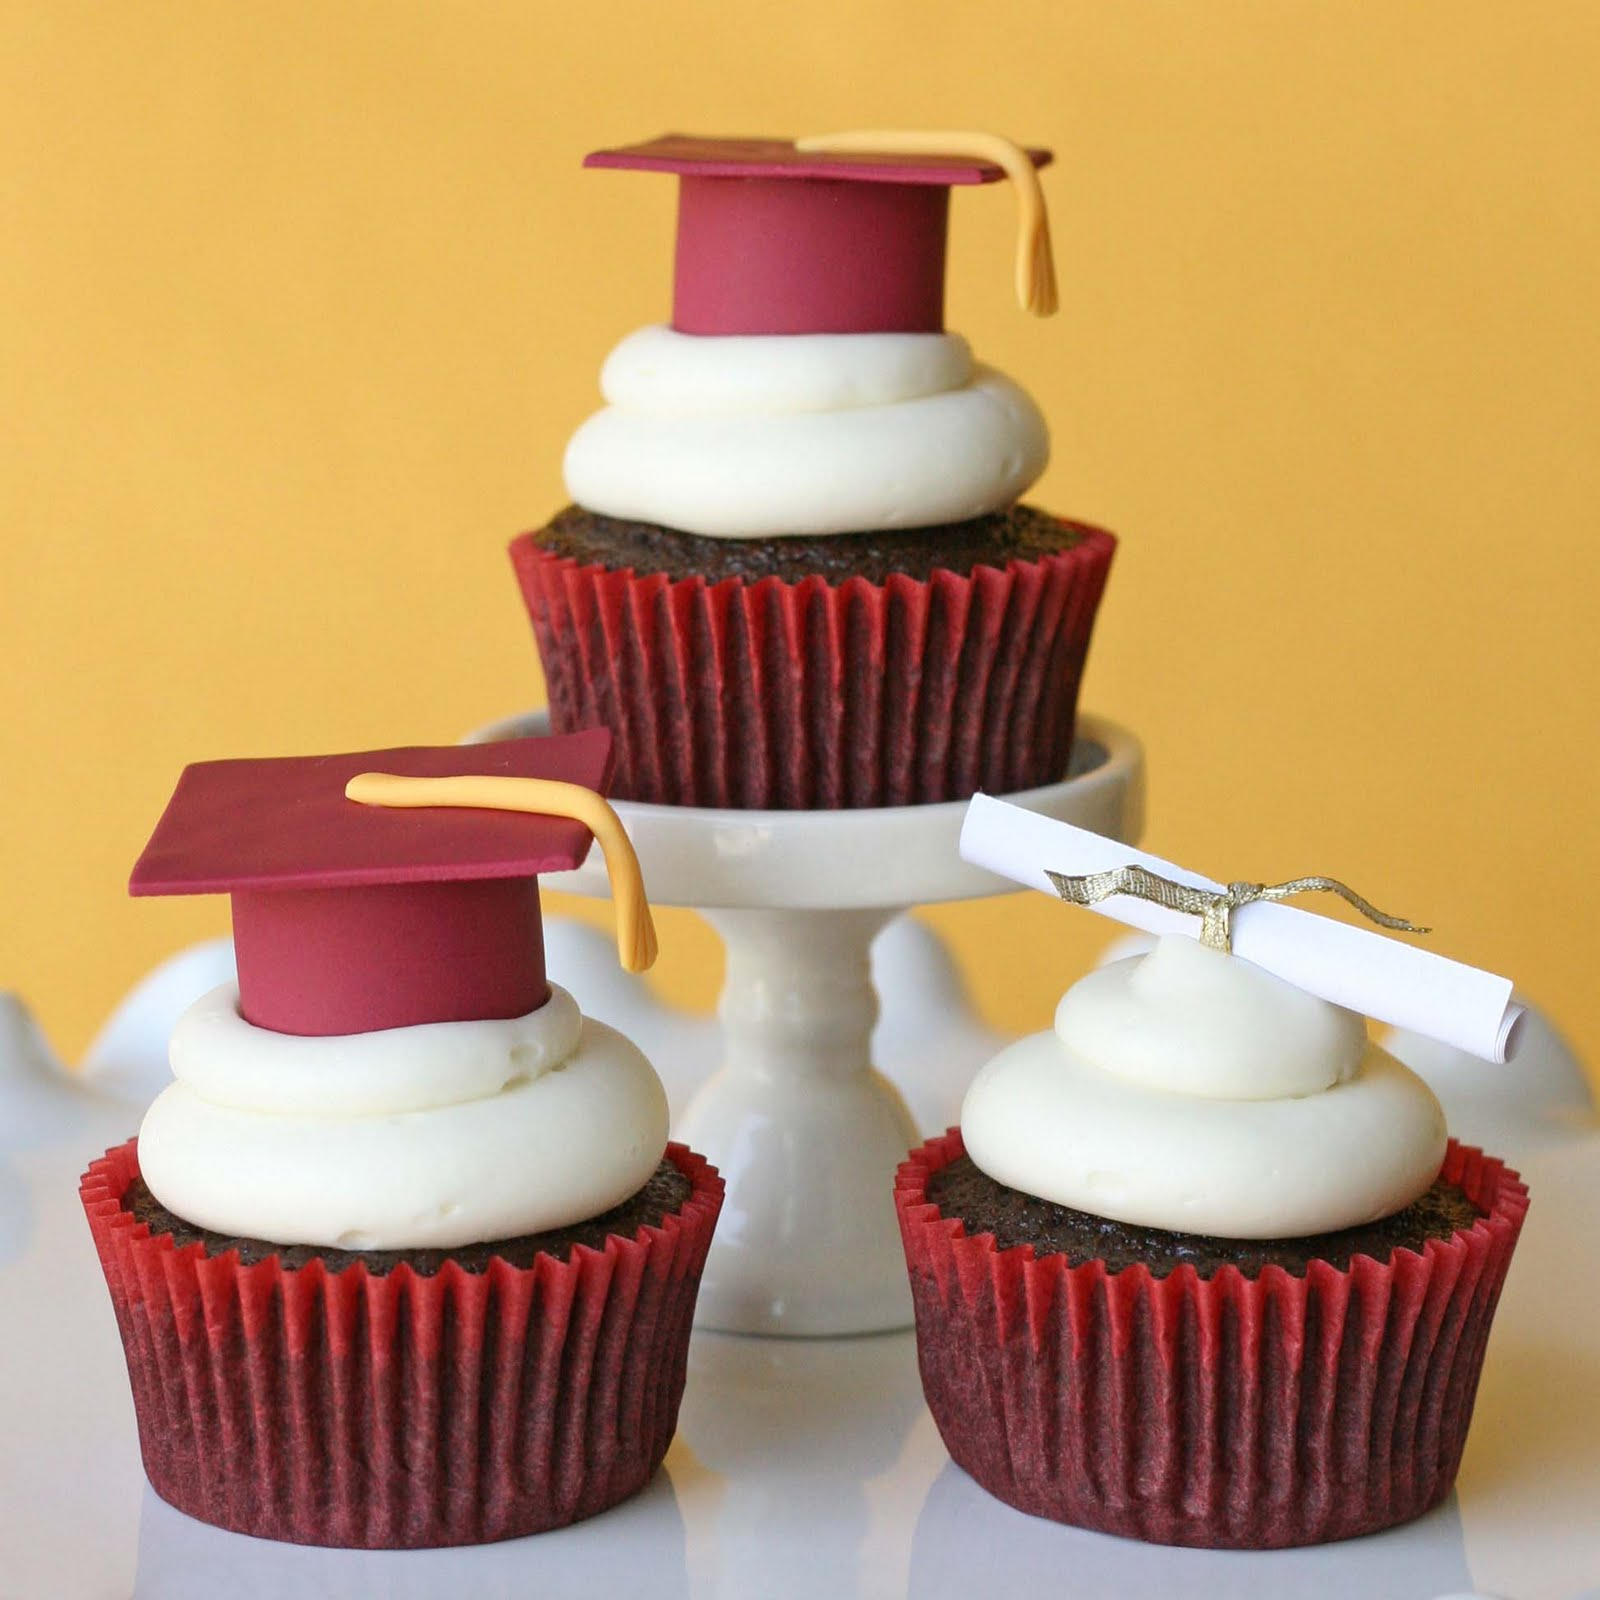 Graduation Party Ideas: Graduation Cupcakes {and How To Make Fondant Graduation